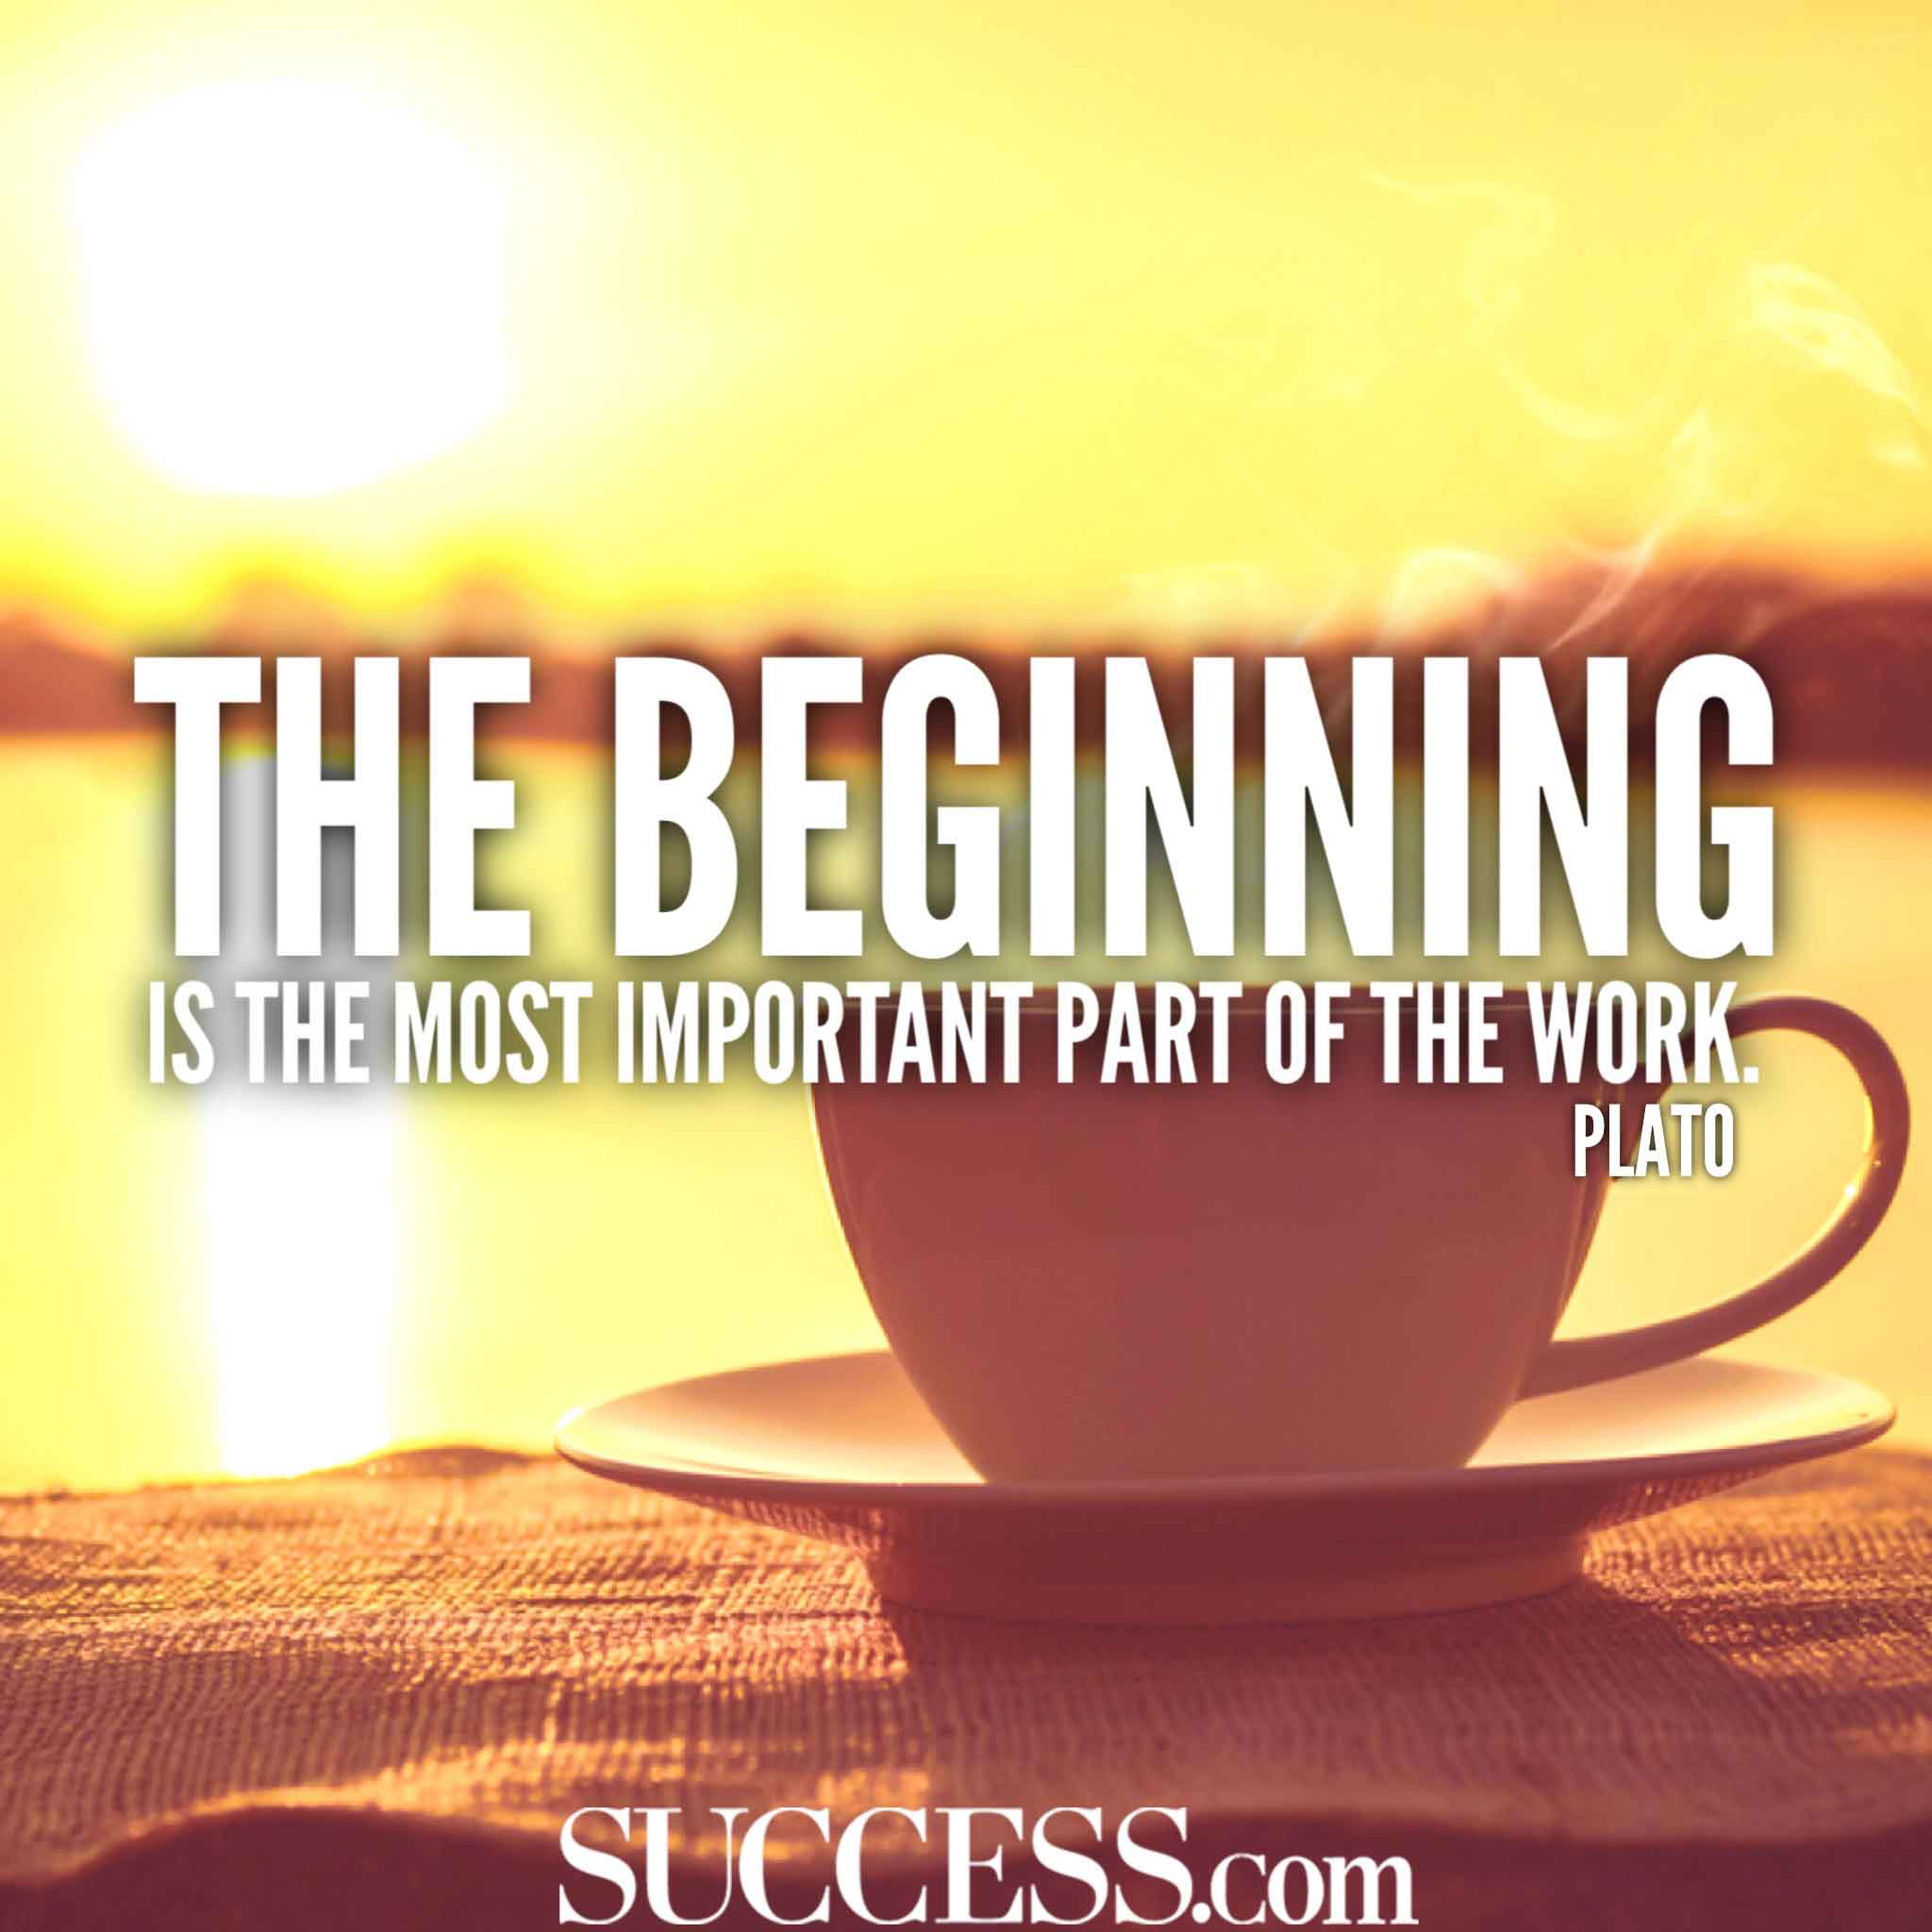 13 uplifting quotes about new beginnings